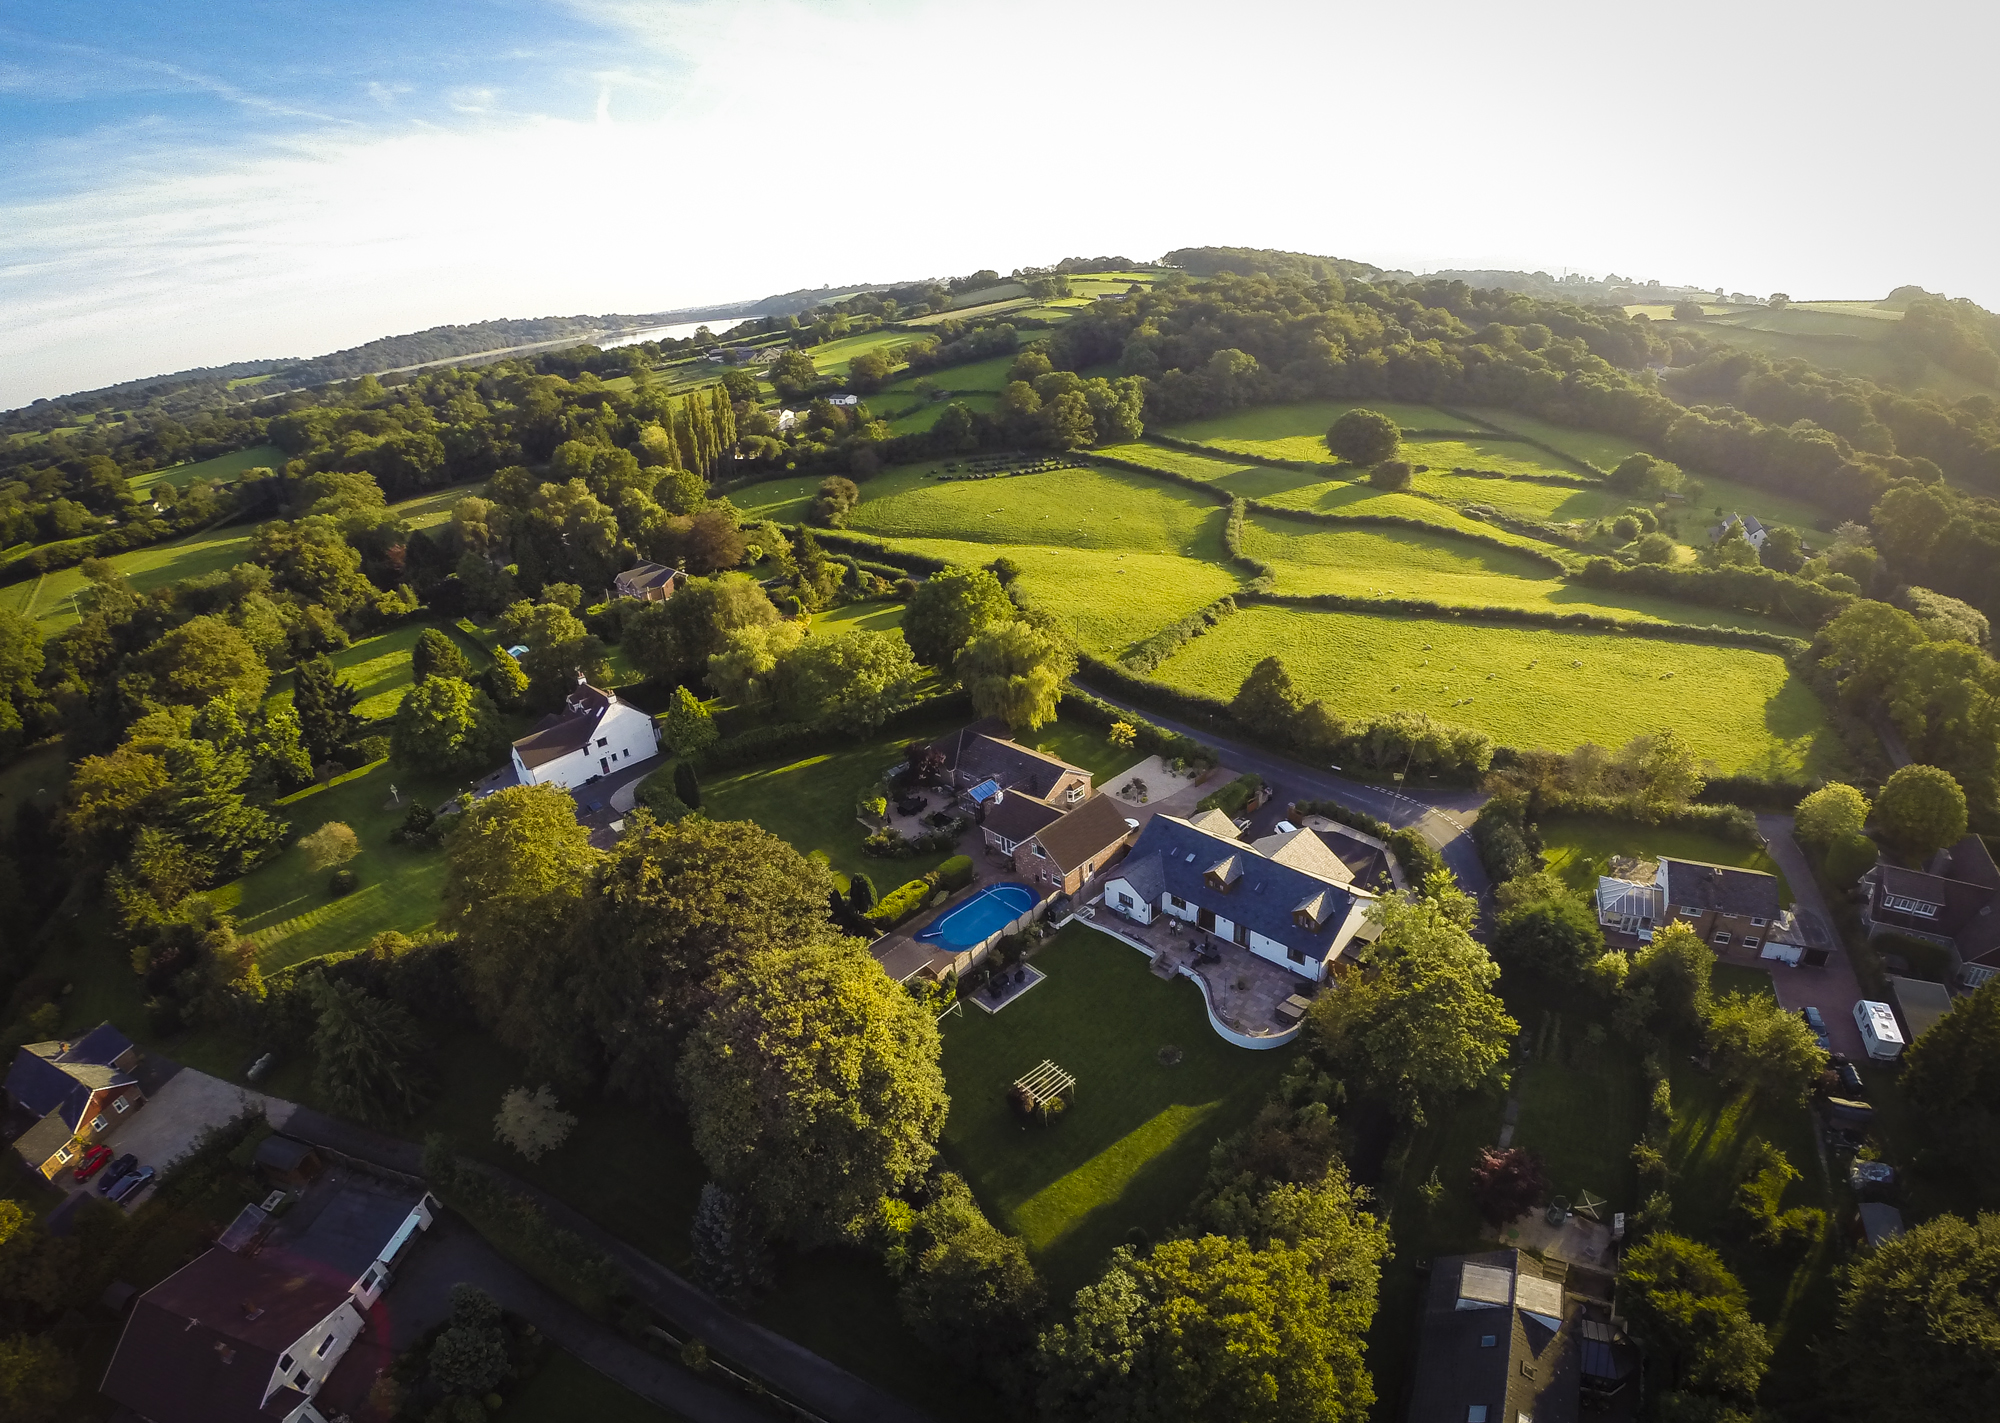 Aerial Photography – Glascoed Village, Pontypool, South Wales